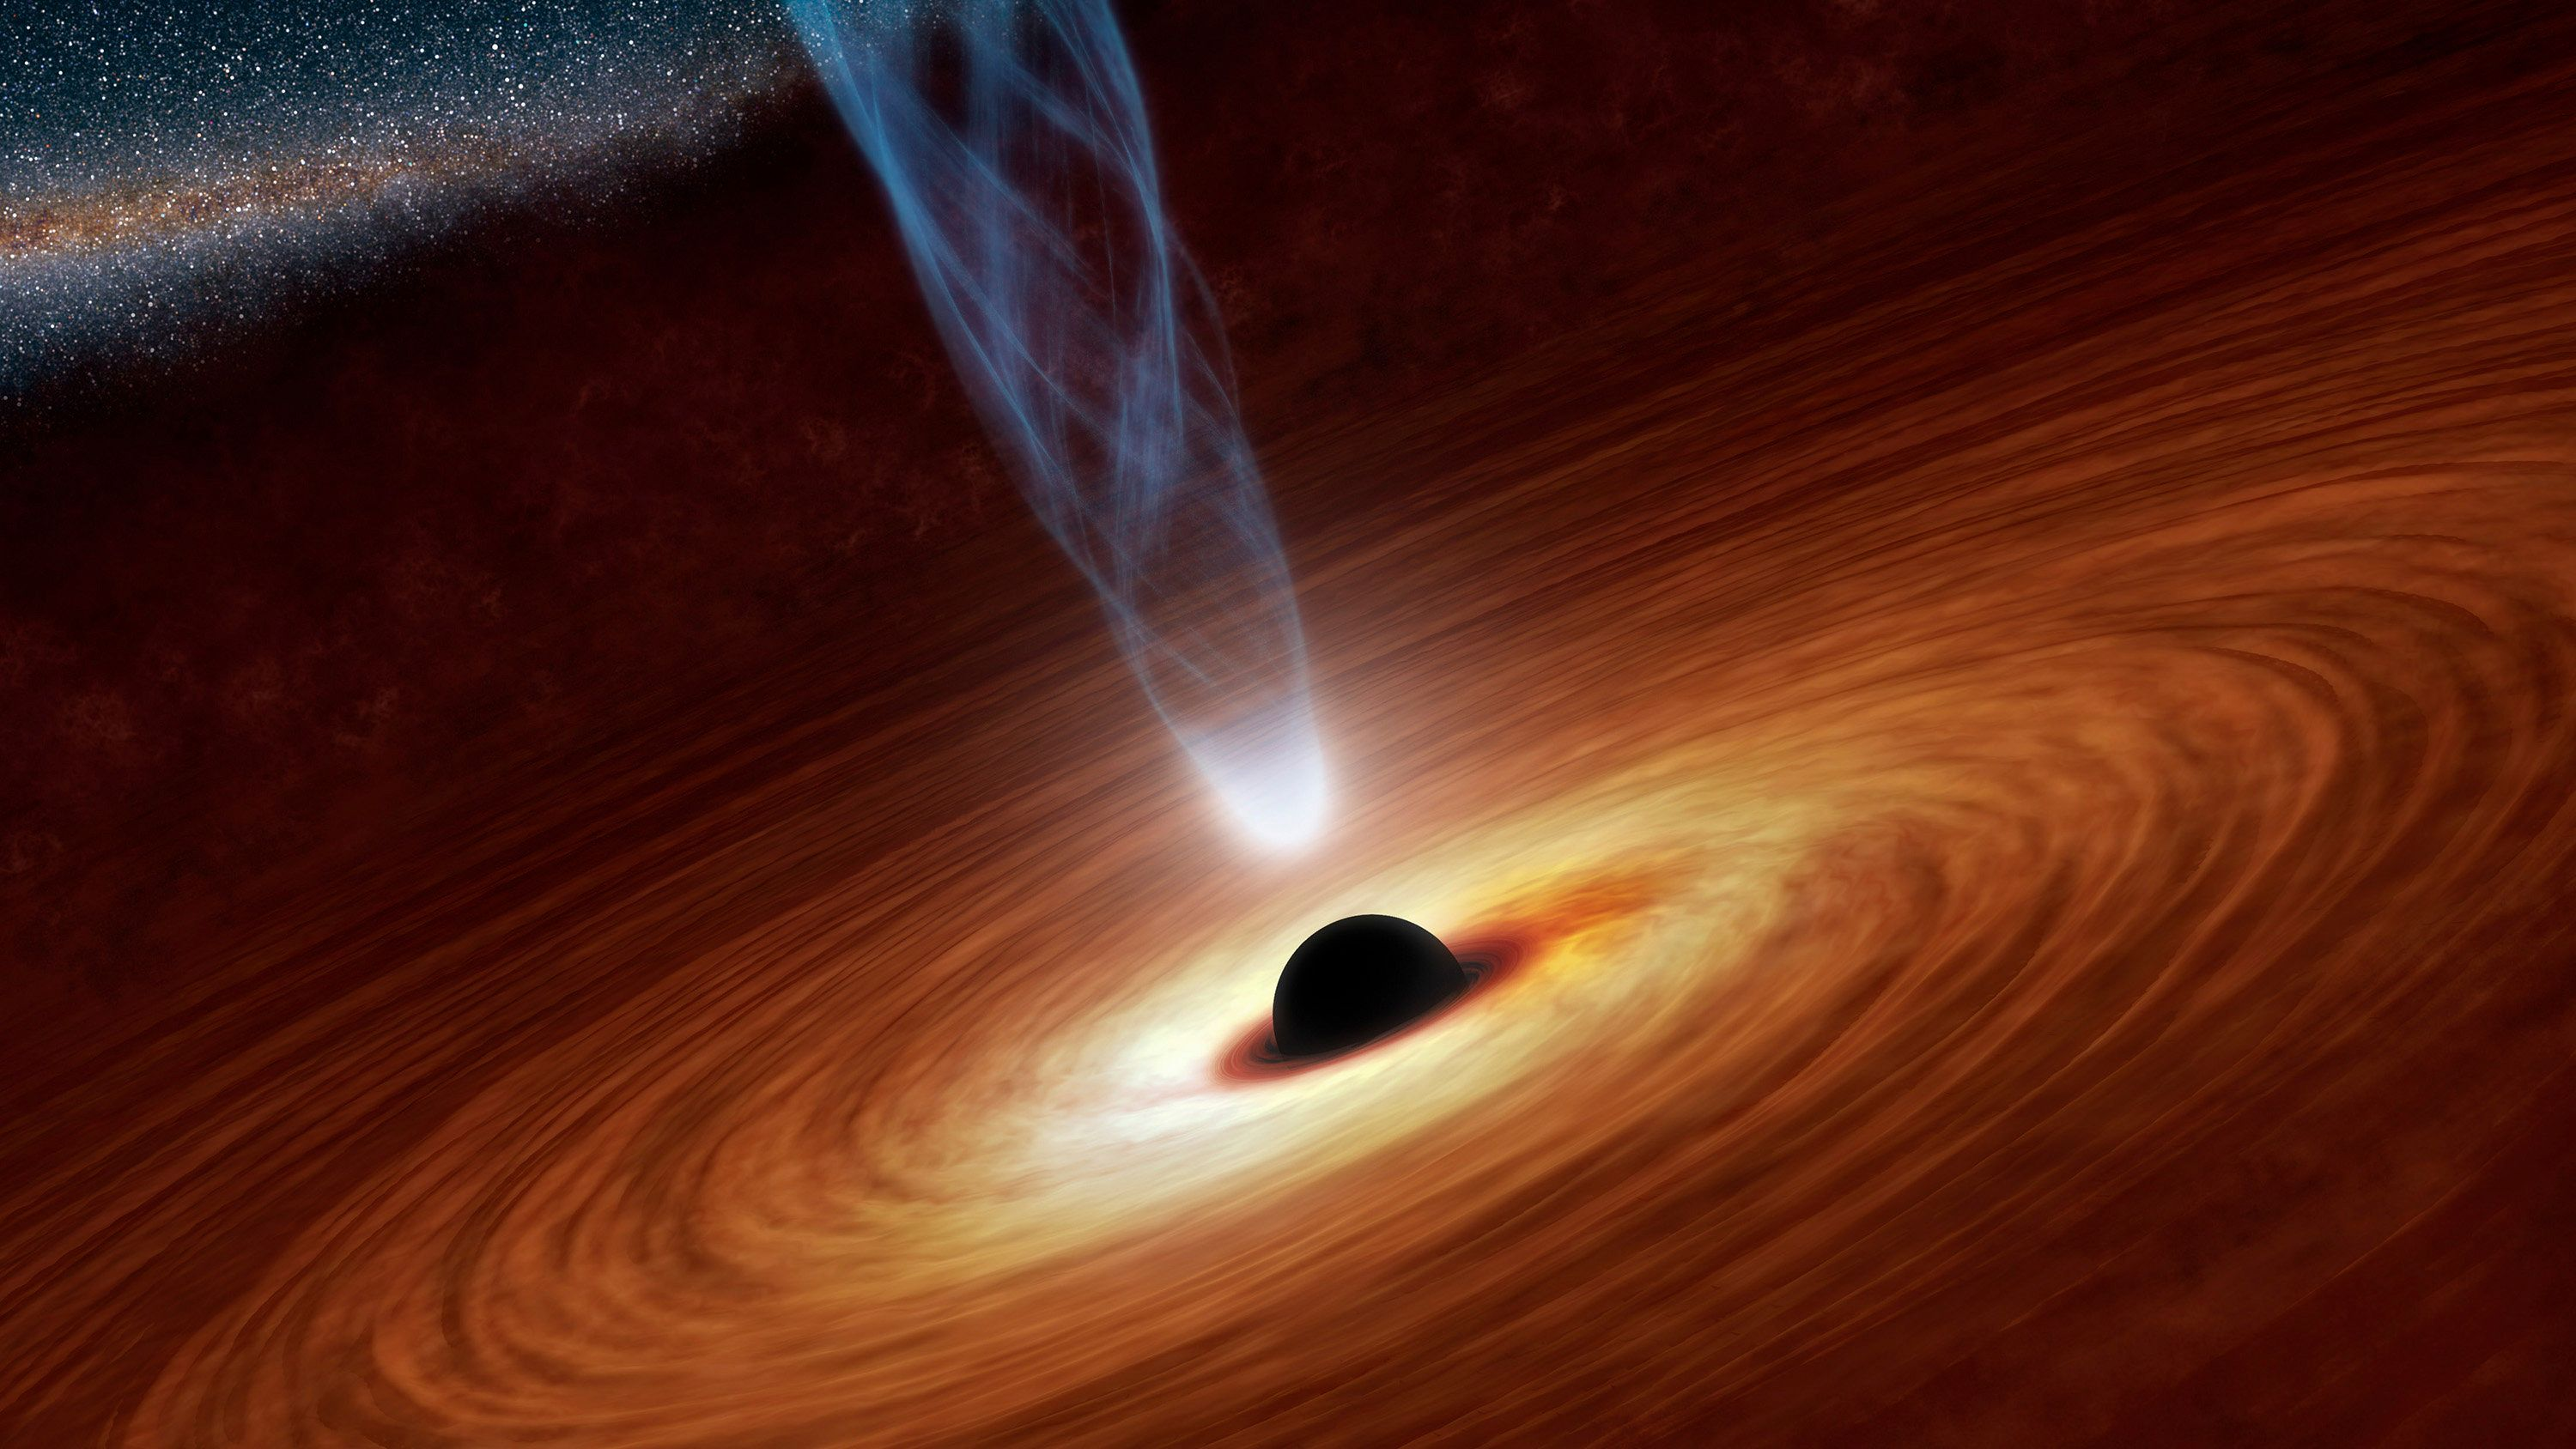 A Supermassive Black Hole Has Broken Free And Is Now Destroying